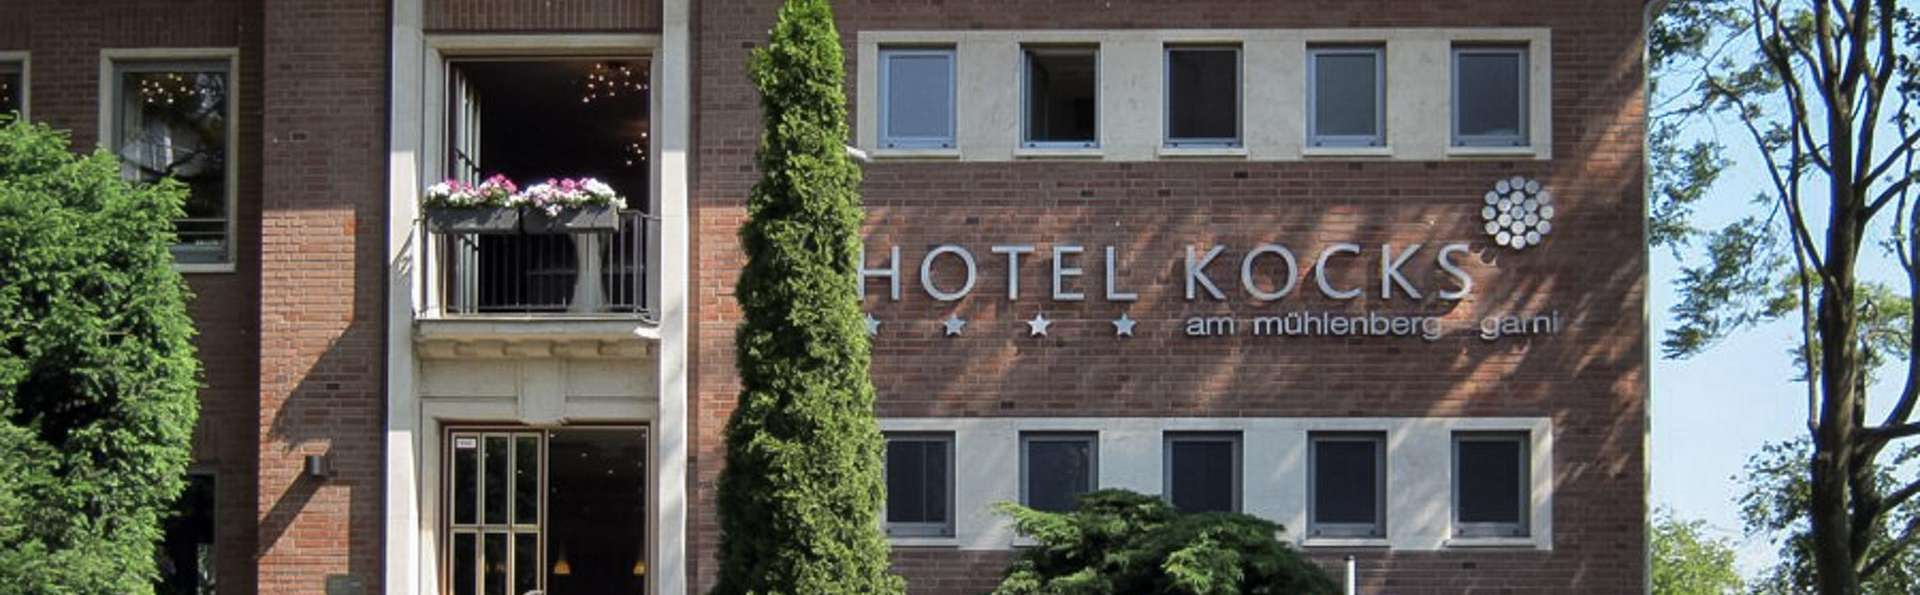 Ringhotel KOCKS am mühlenberg - EDIT_FRONT_01.jpg